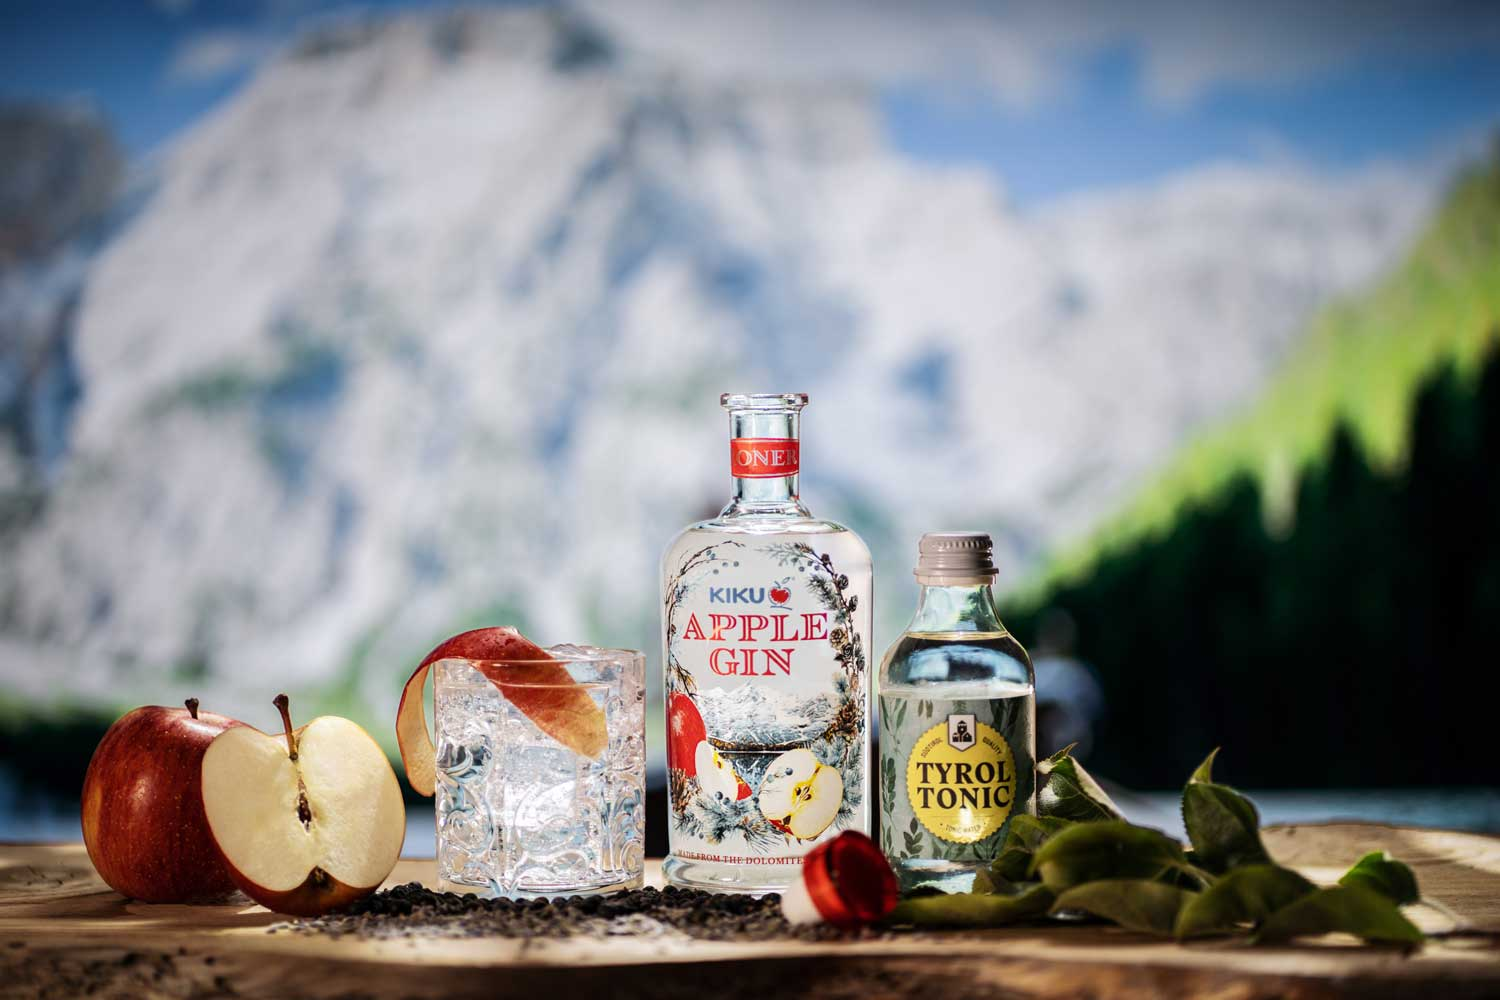 Kiku Apple Gin